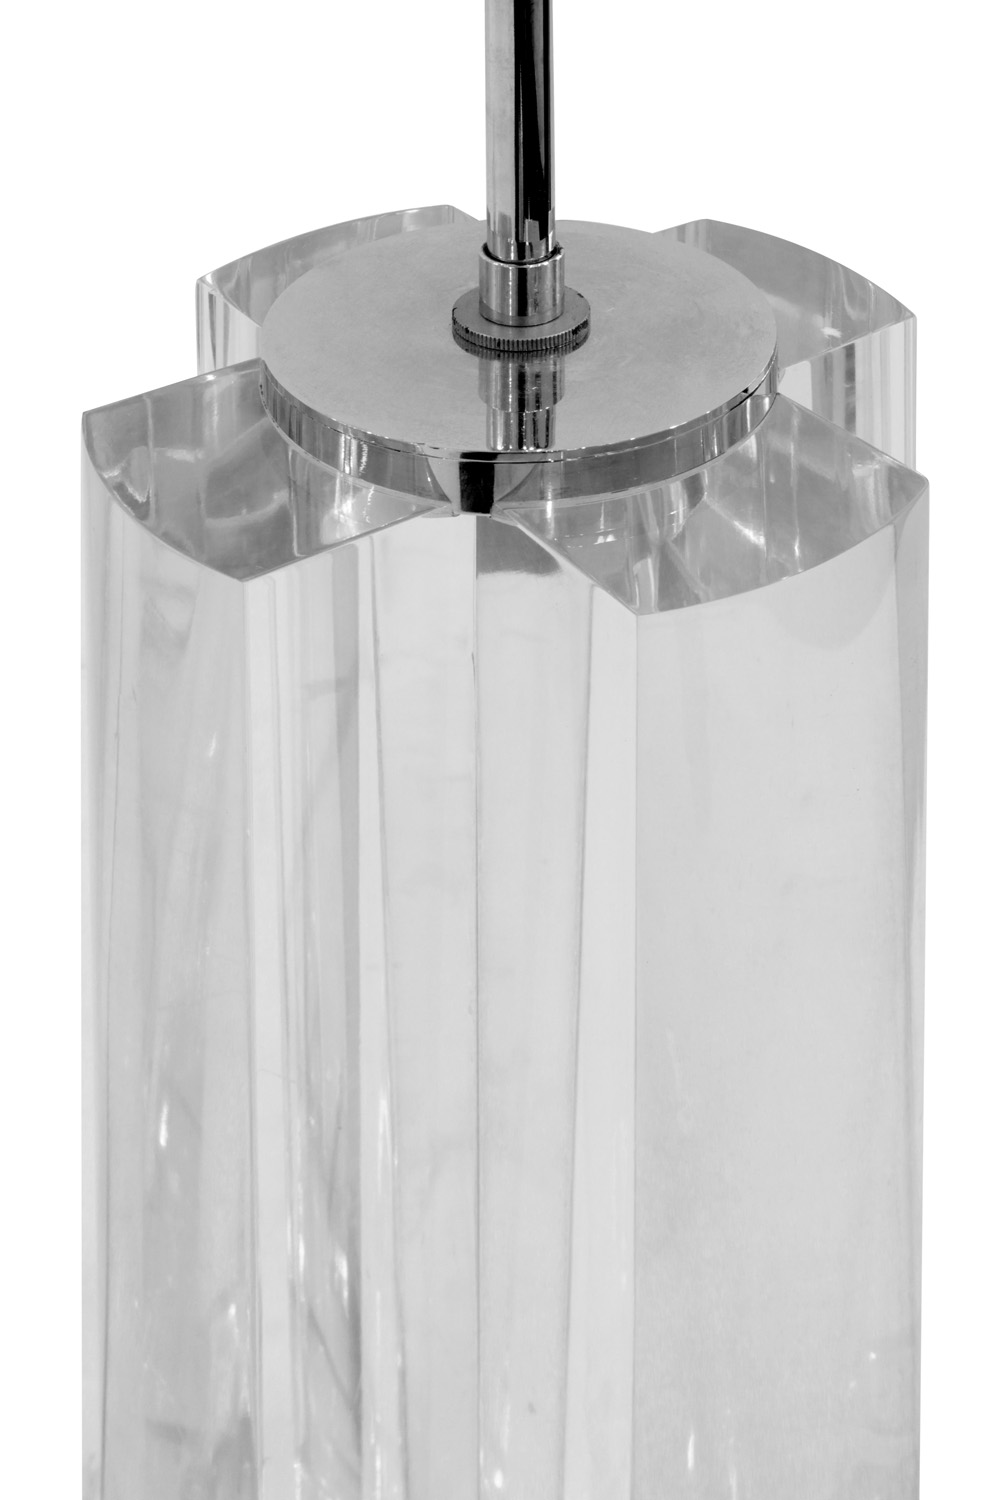 Springer manner 45 3 edge lucite block tablelamp209 detail2 hires.jpg